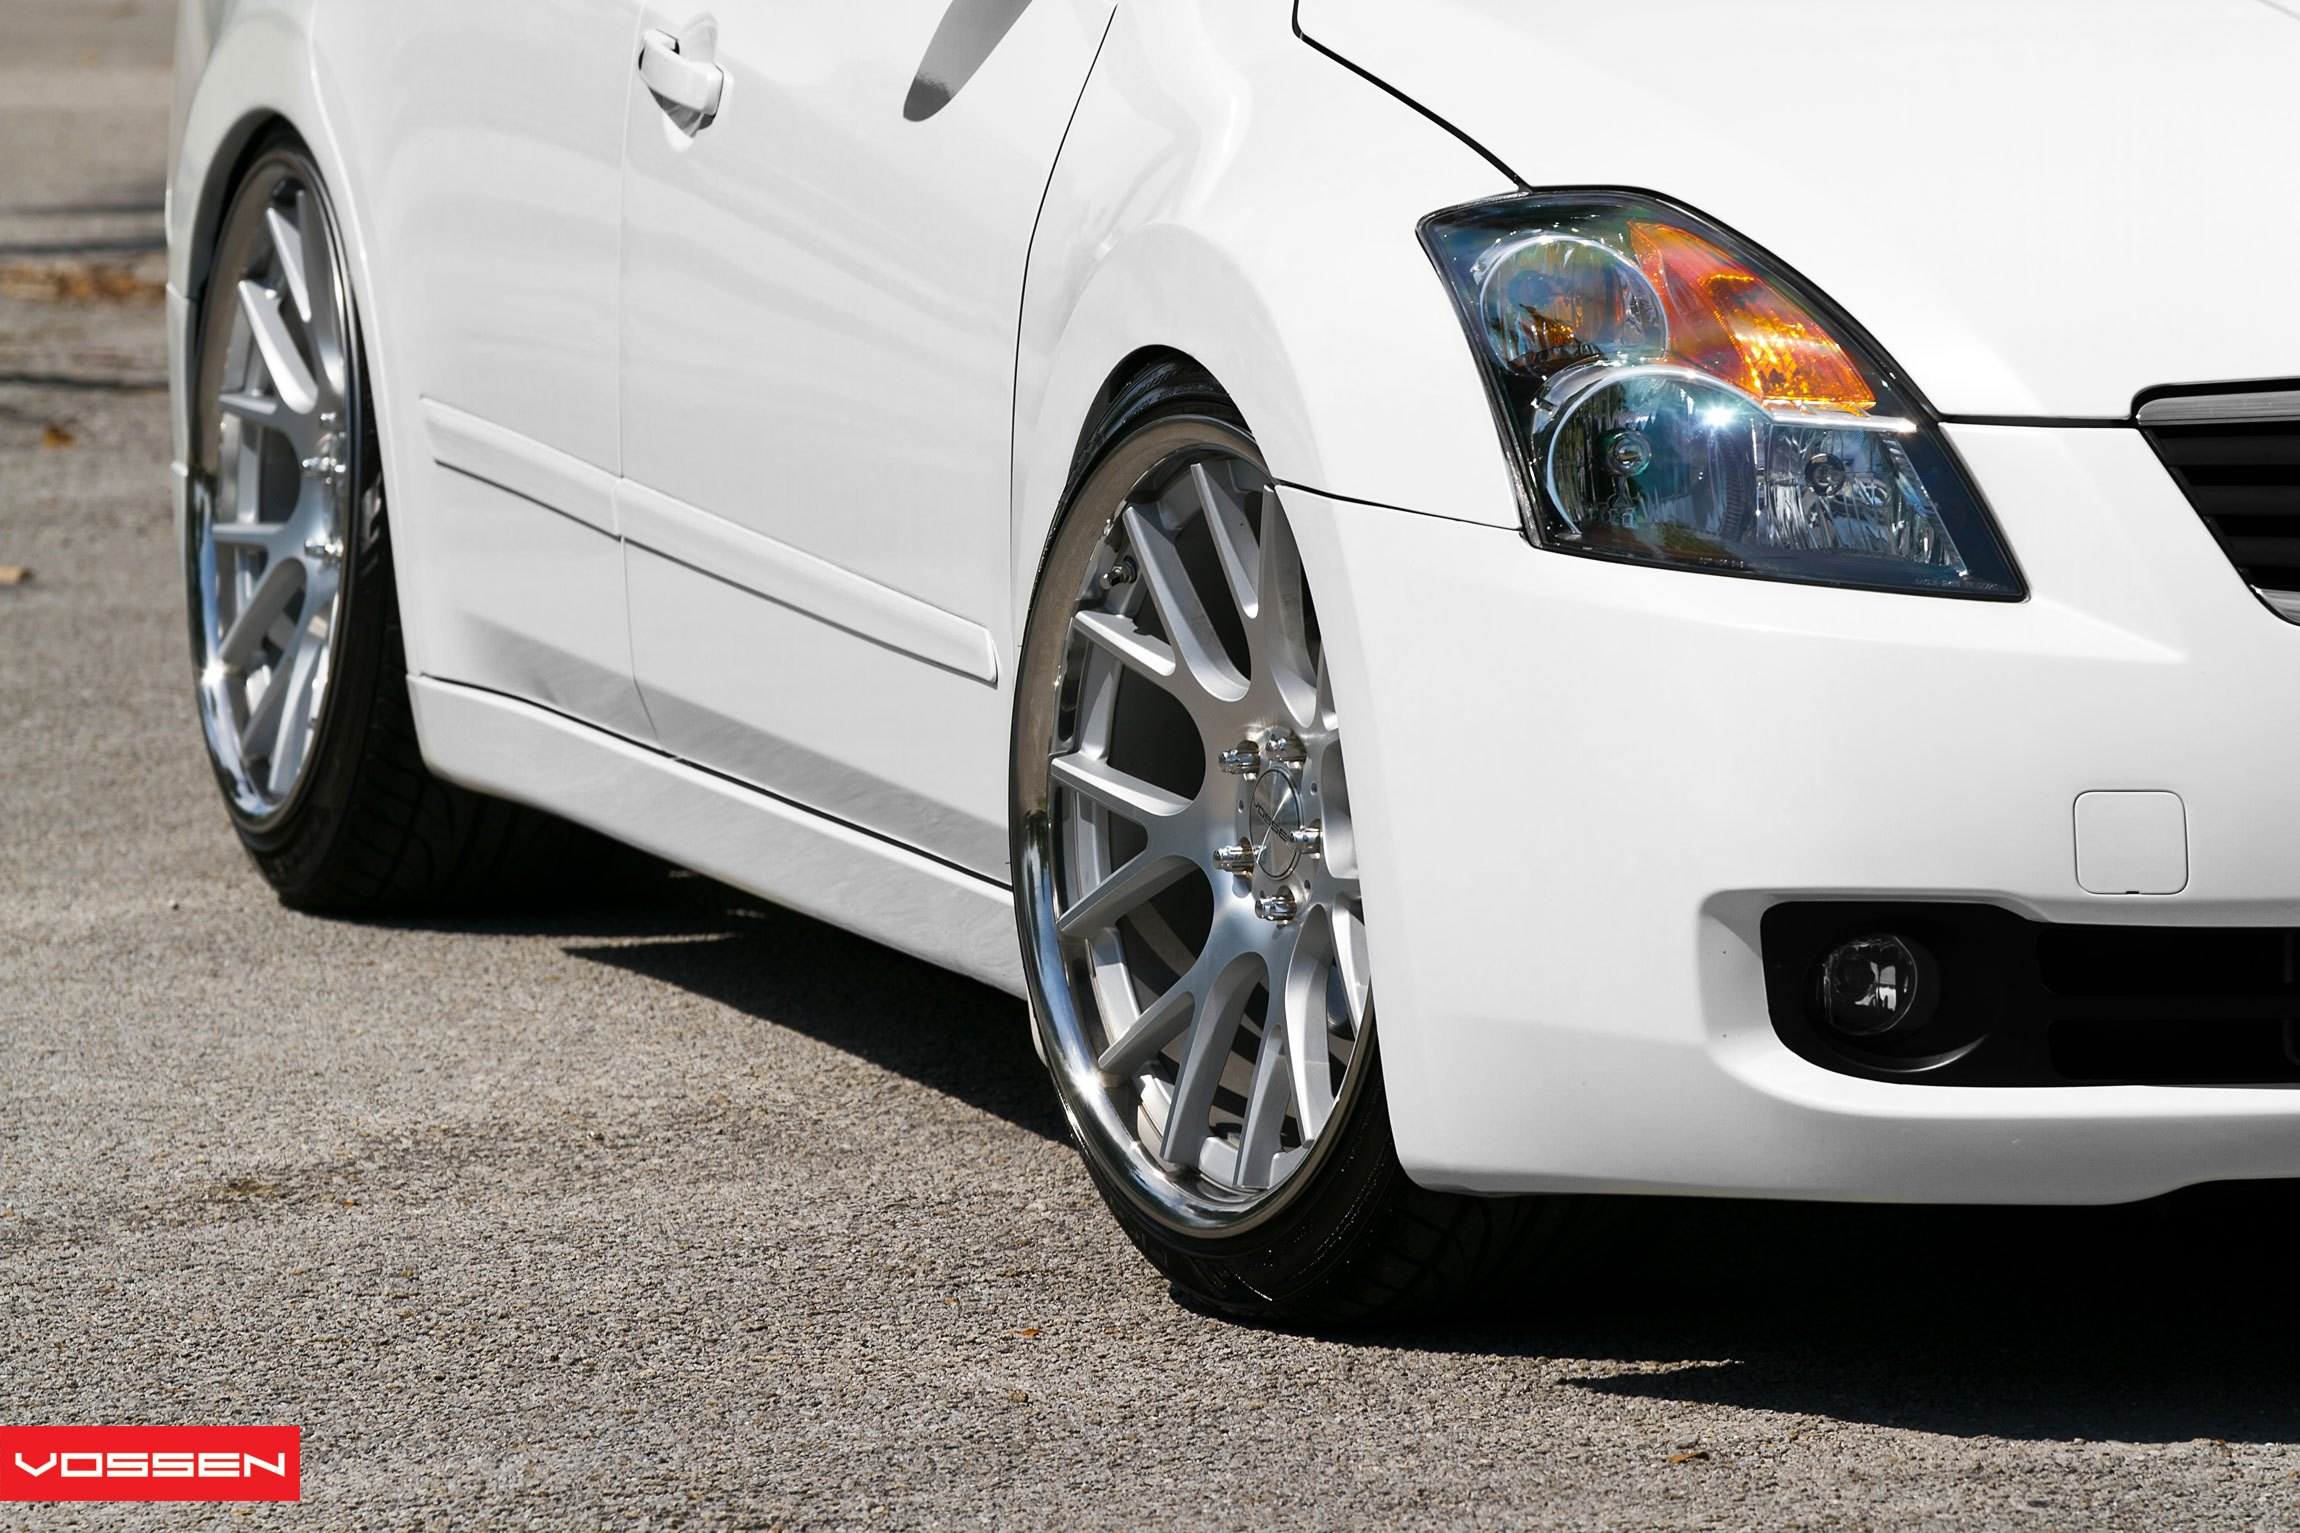 Low And Clean Nissan Altima Fitted With Classy Custom Wheels by